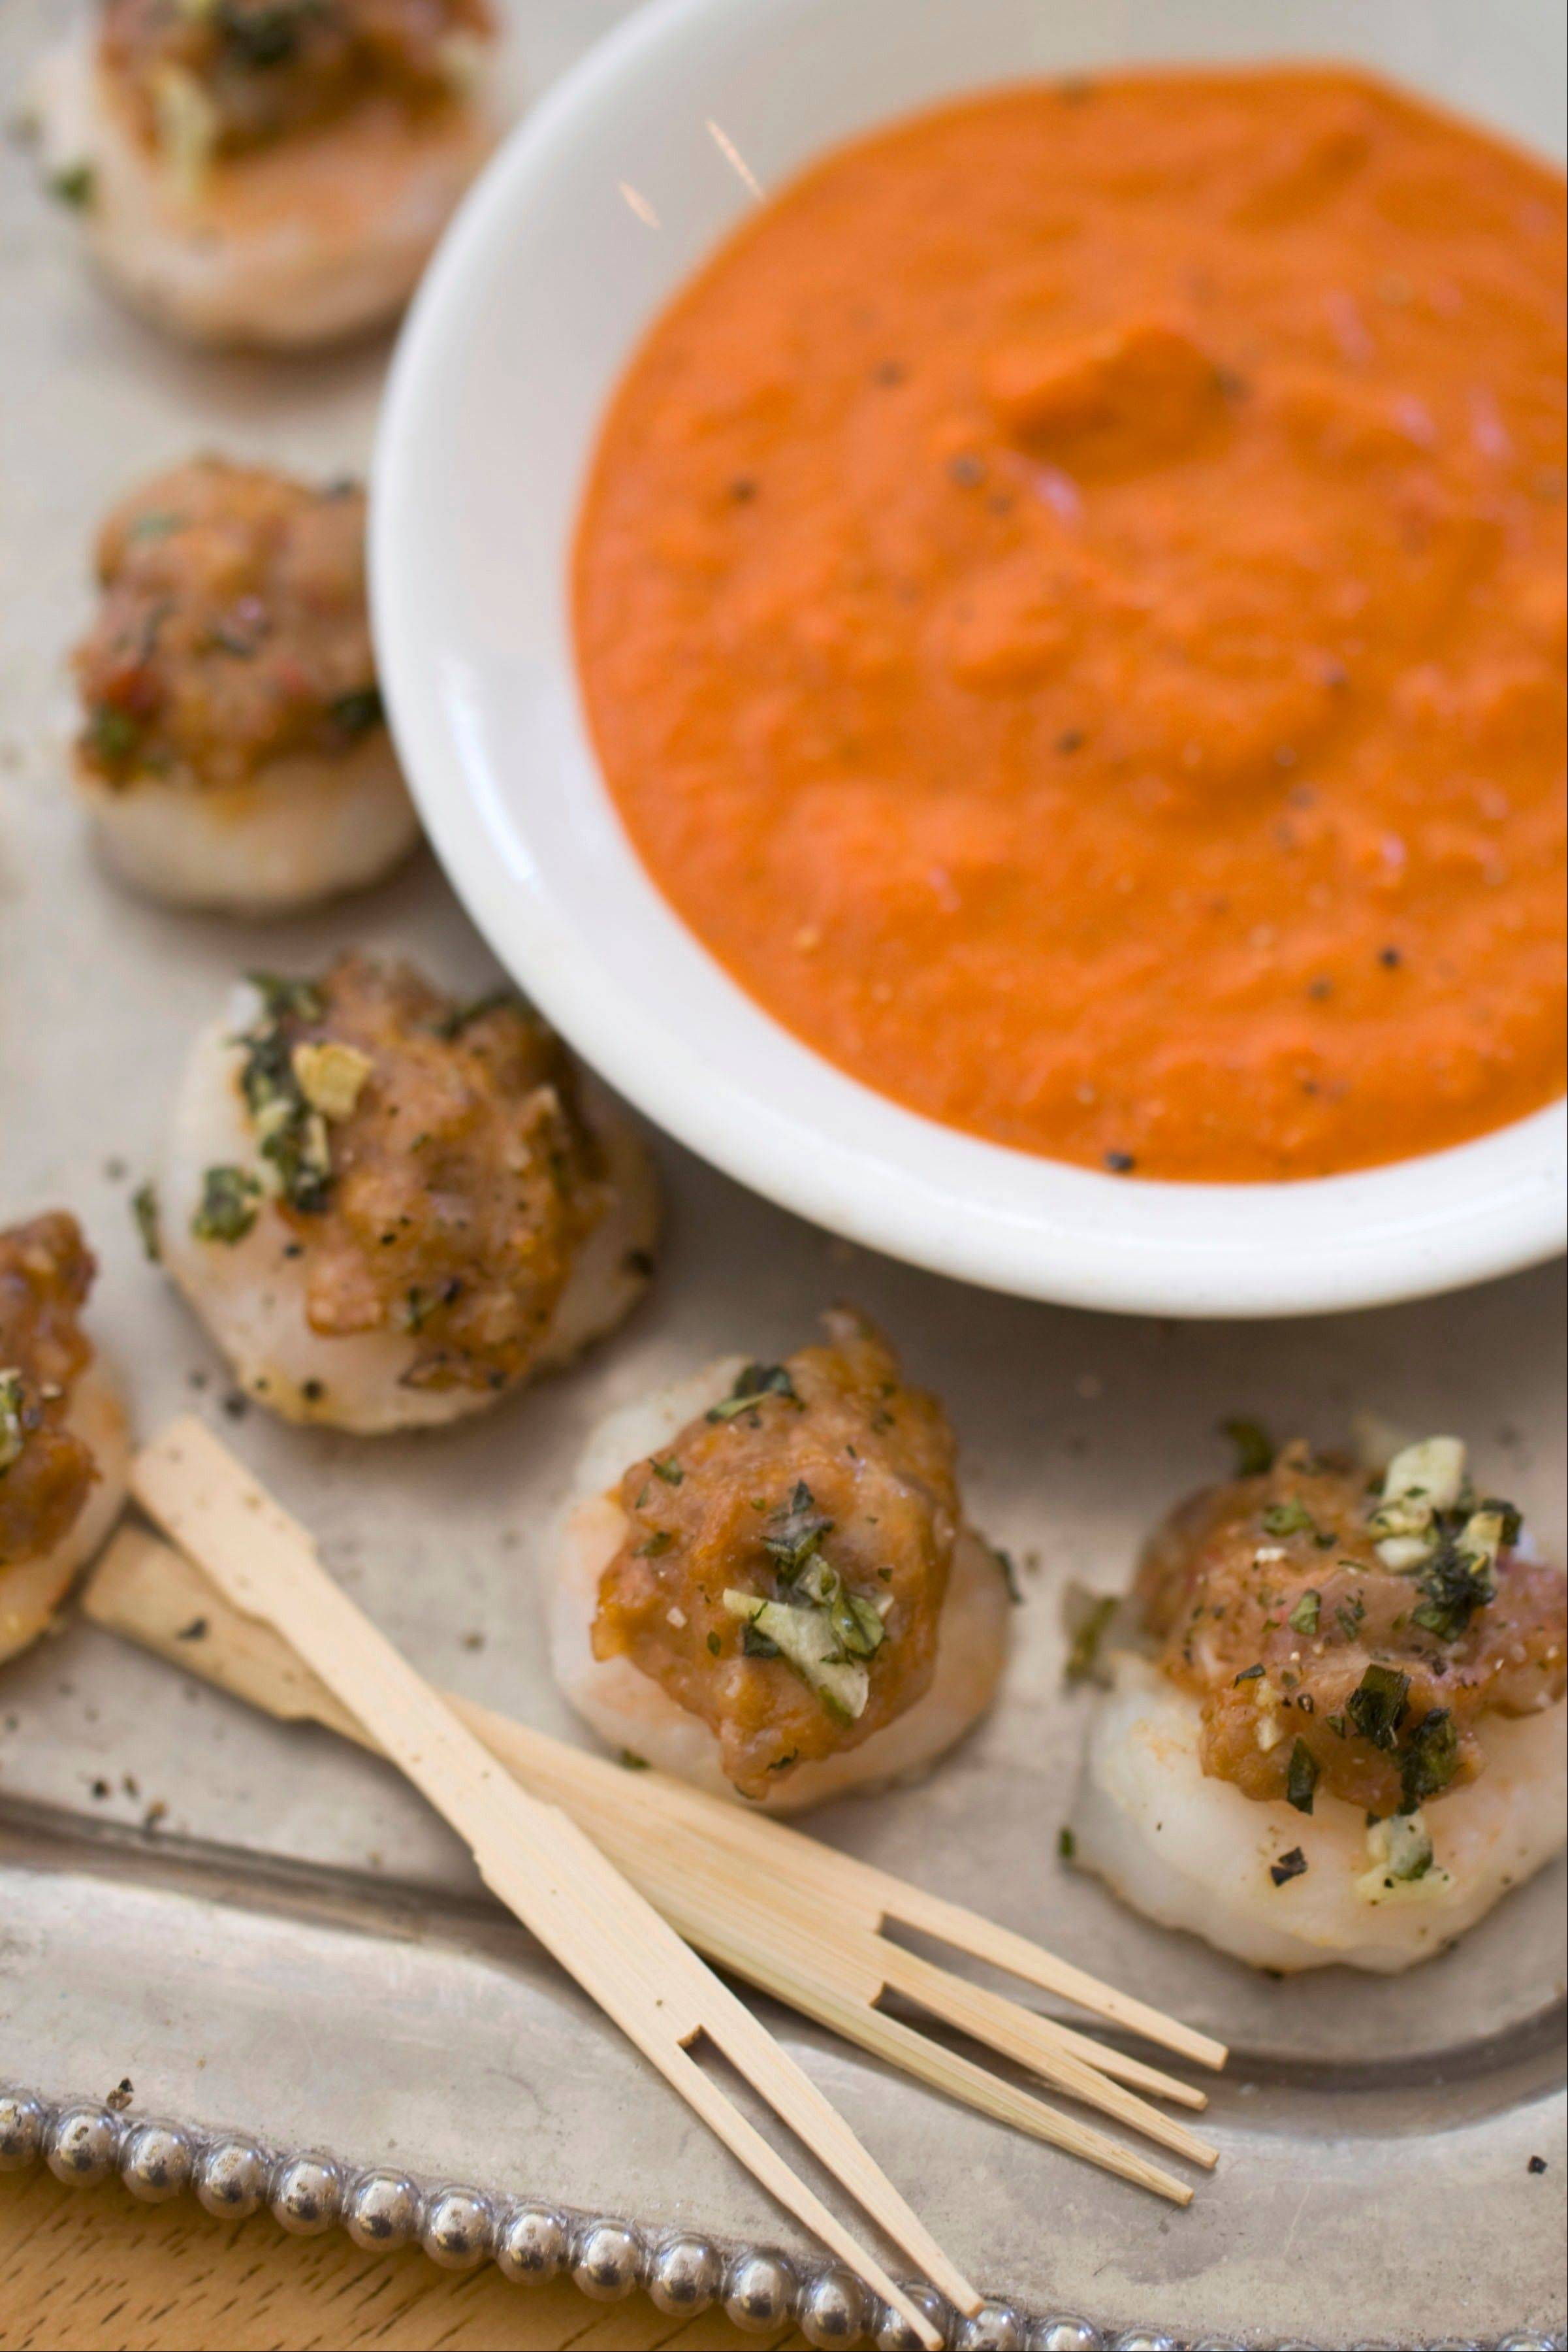 Wrapping shrimp around a nugget of sausage is a clever trick and the proteins bake into the perfect appetizer or hors d'oeuvres for a holiday party.